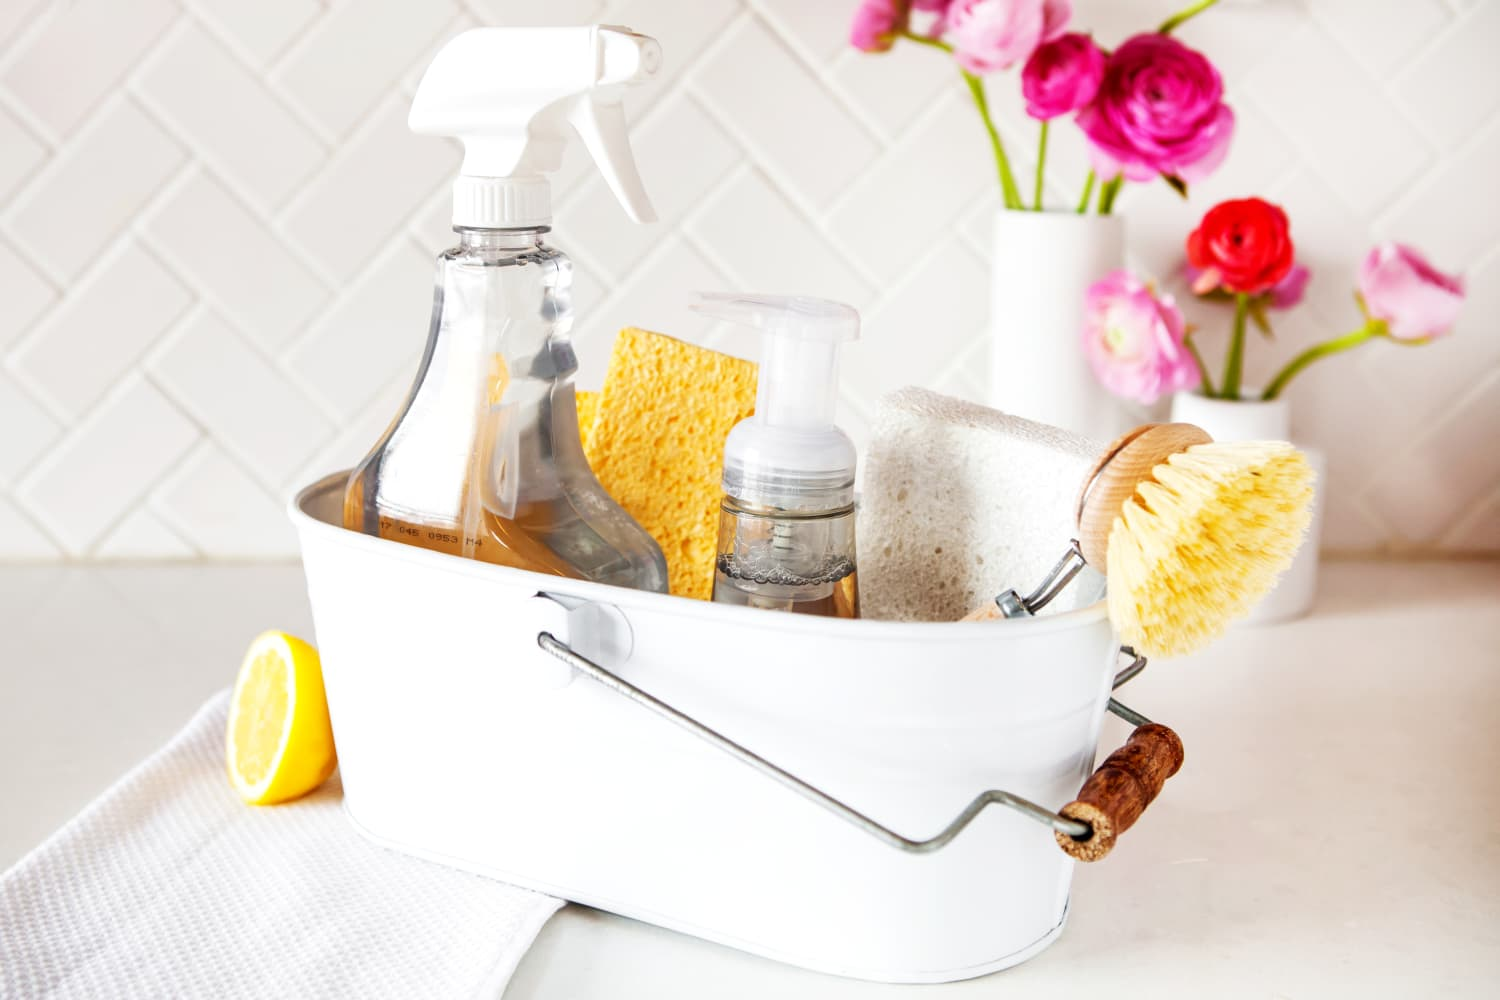 32 Smart and Surprising Uses for All the Cleaning Supplies You Already Have